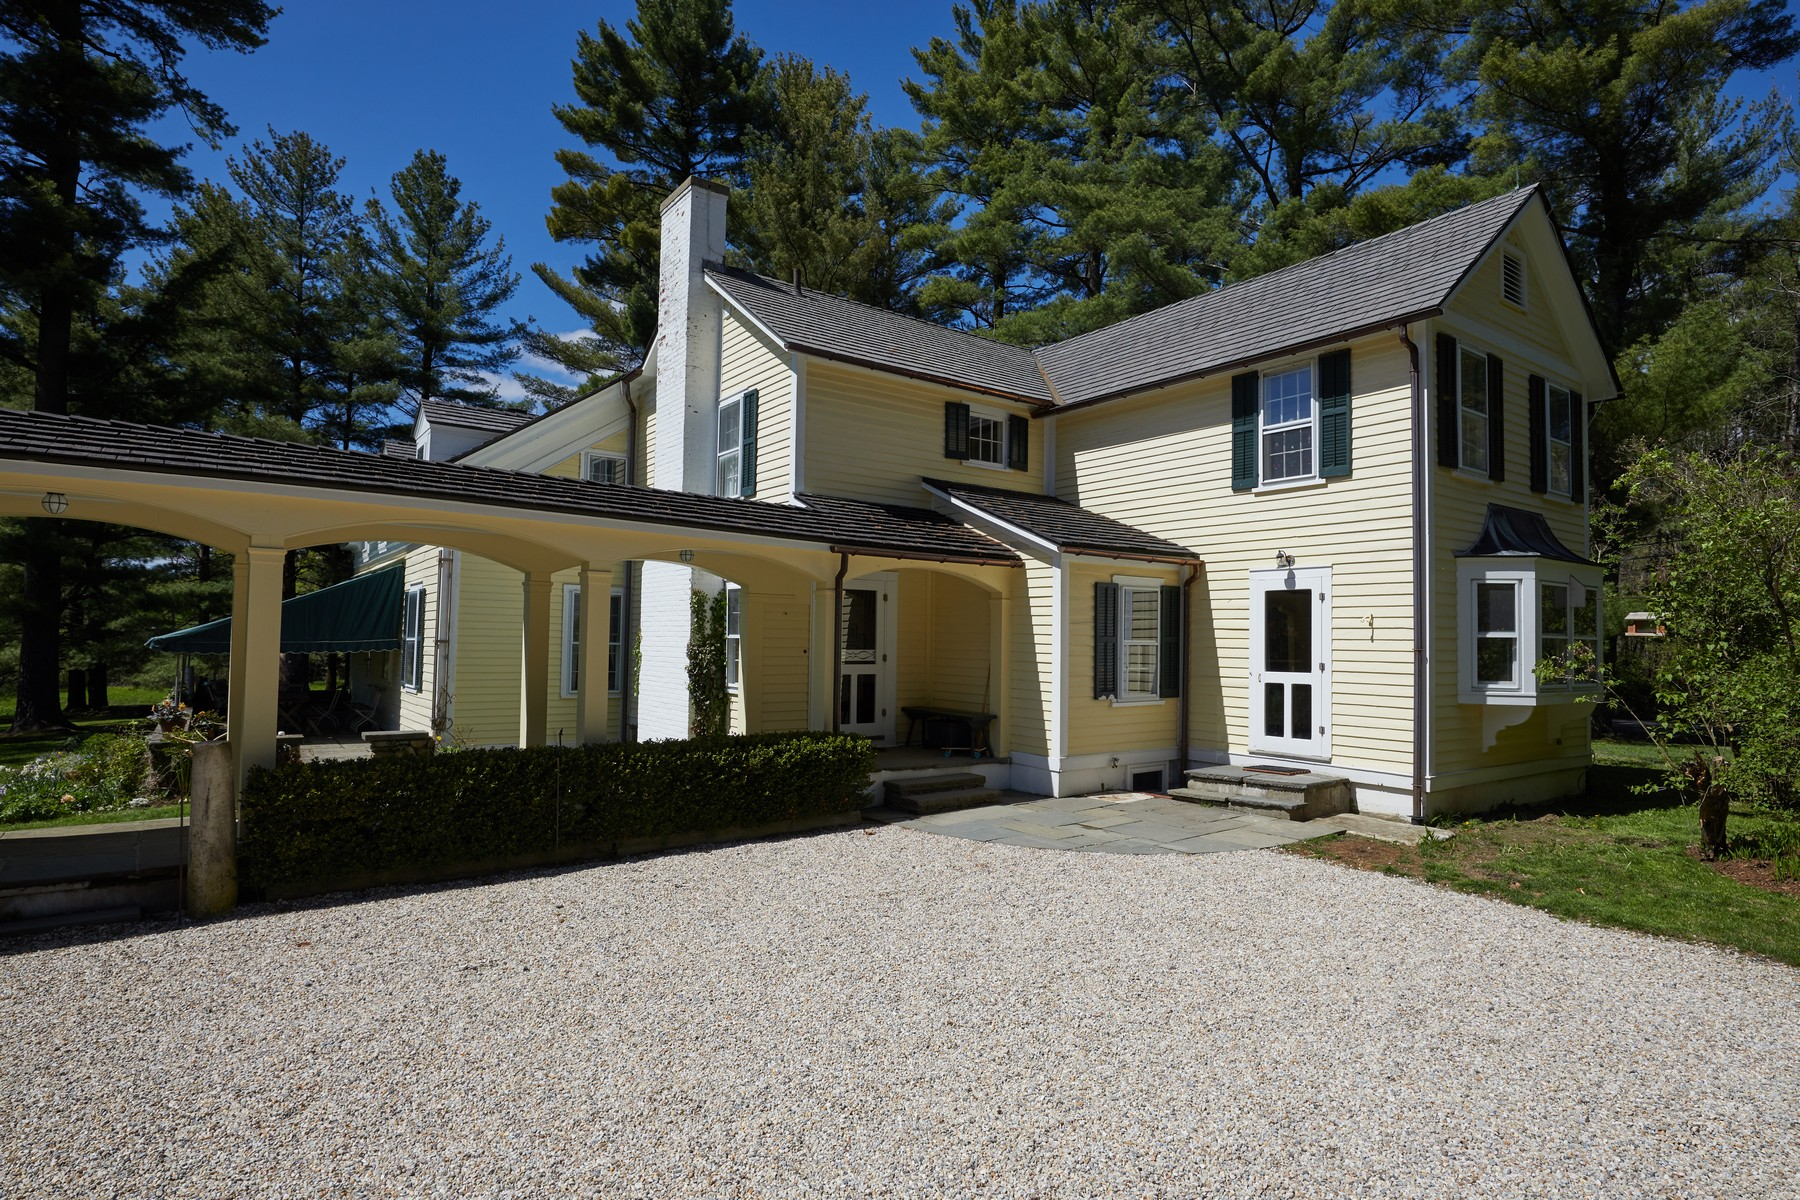 Single Family Homes for Active at Beautifully Restored Modern Farmhouse on 6 Acres, near Stockbridge and Lenox 95 Devon Rd Lee, Massachusetts 01238 United States